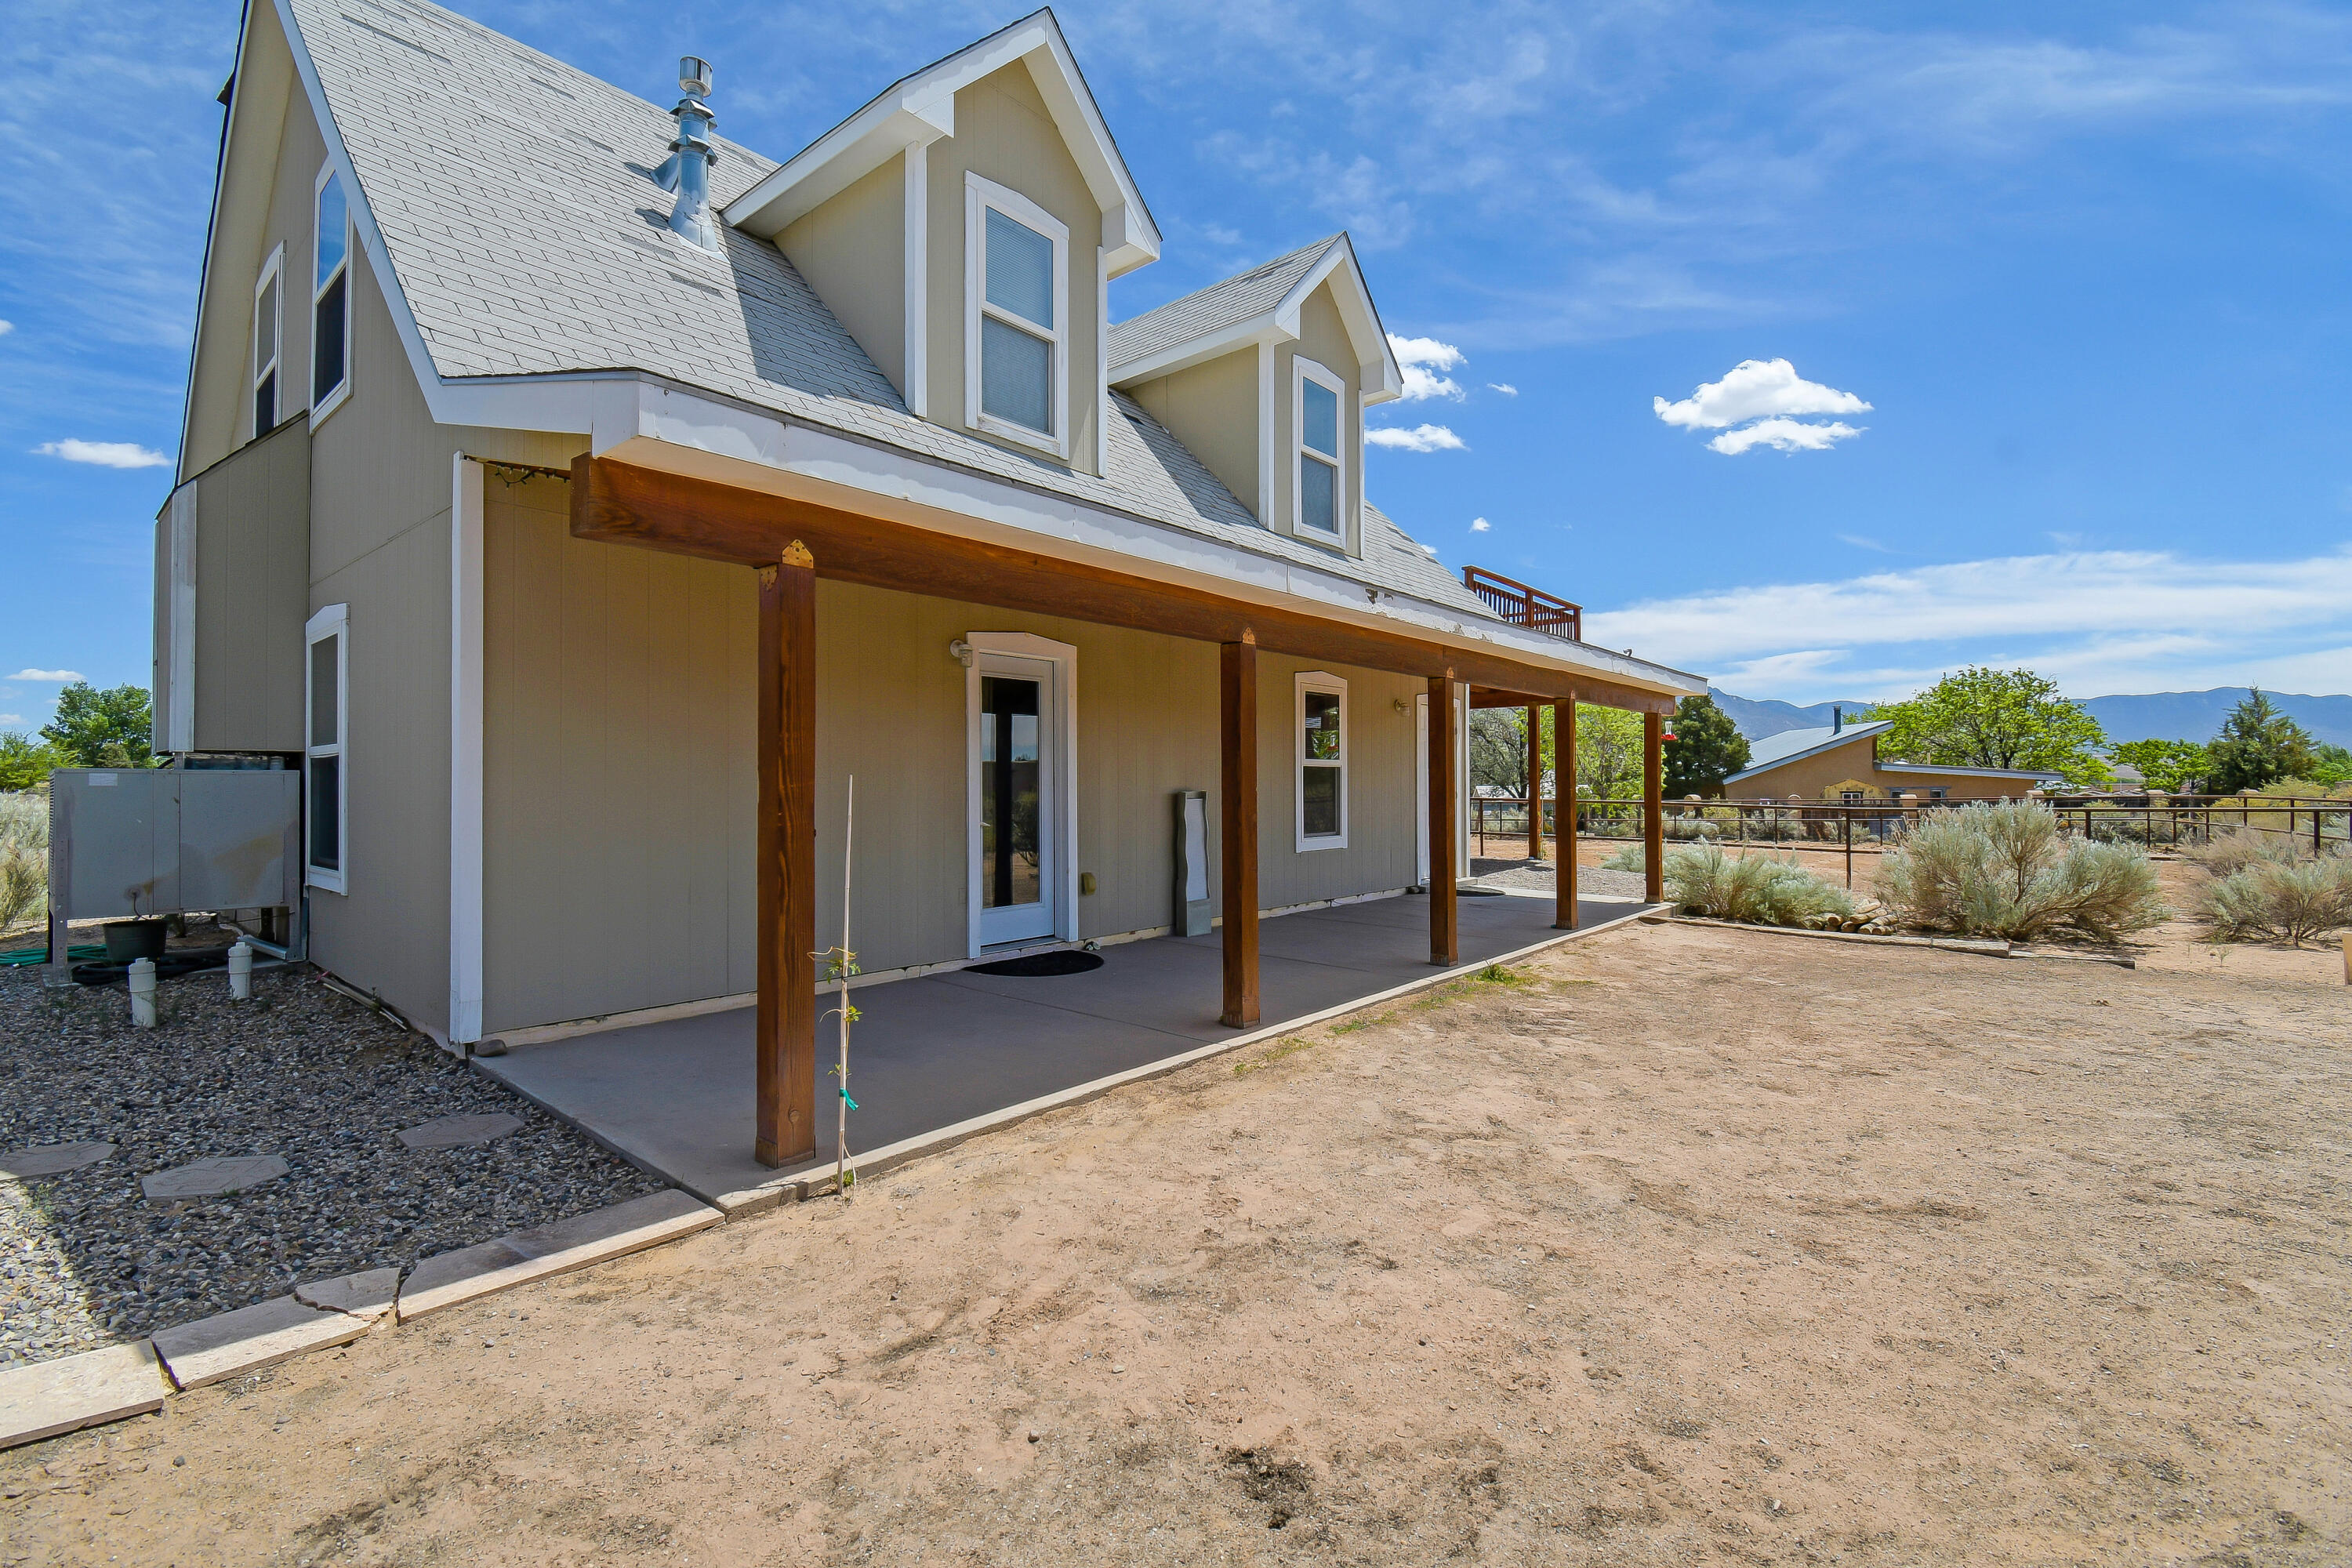 First Showings at Debut Open House, Saturday May 15th, 1-3 pm. Perfect multi-gen property and great Corrales horse setup on 1 acre with 1/3 acre brand new pipe fence paddock / arena plus a 12' x 36' Barn with two 12' x 12' stalls and 12' x 12' hay storage, separate shed for tack storage. Upper level  studio features a good sized kitchen, eating area, 3/4 bath, bedroom nook plus a million dollar Sandia Mountain View from the large deck. The main level boasts a spacious 1 bedroom with luxurious full bath, living room and efficient kitchen and a lovely south covered portale. Upper and lower levels can be separate or used together. Common main level laundry area.  Many new trees have been planted. This is a great opportunity to make your affordable move to Corrales!